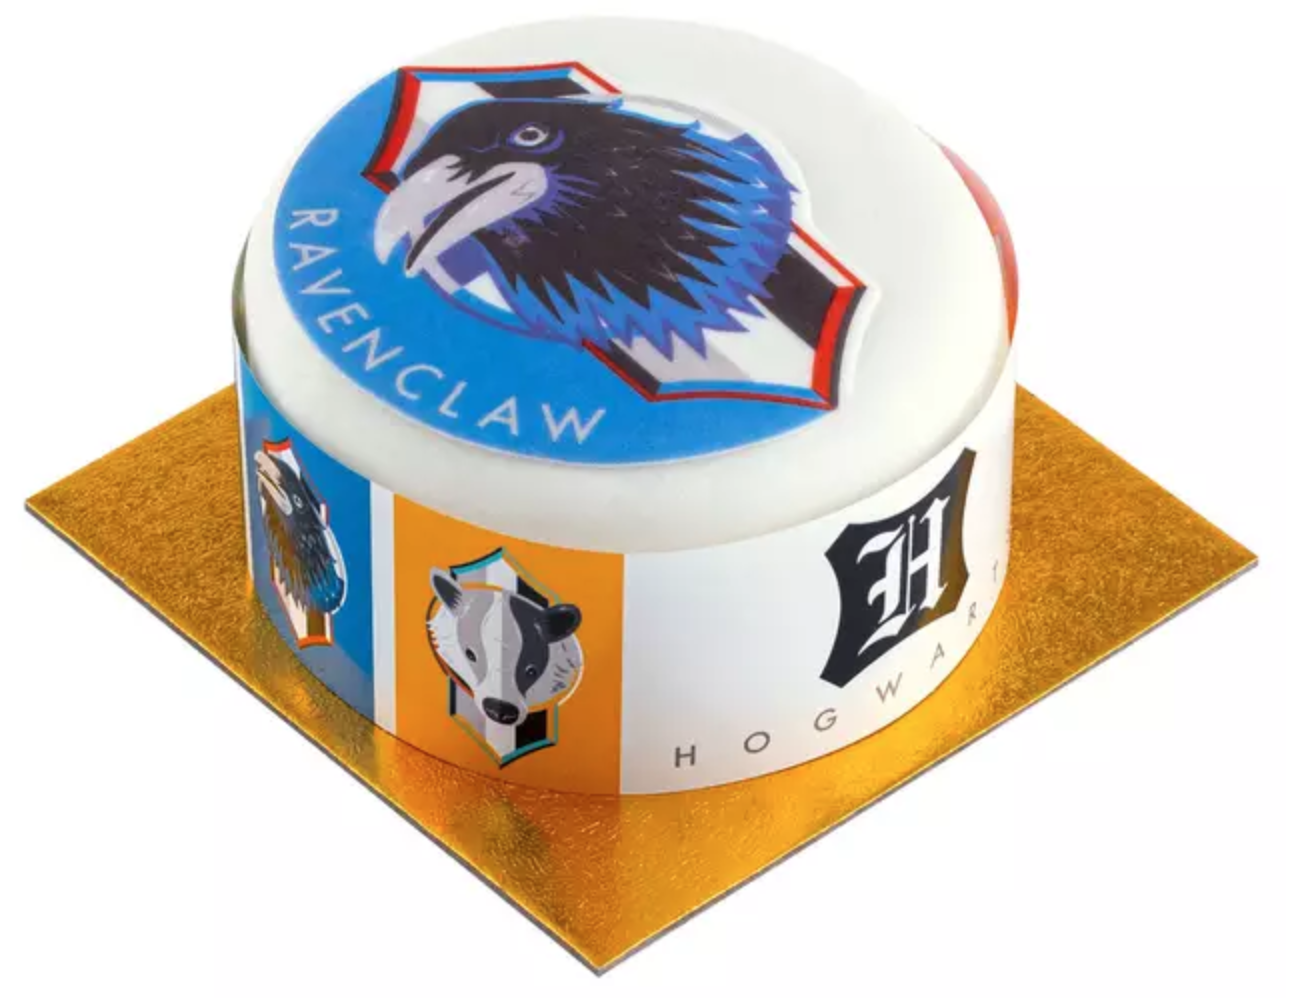 Ravenclaw-themed cake.